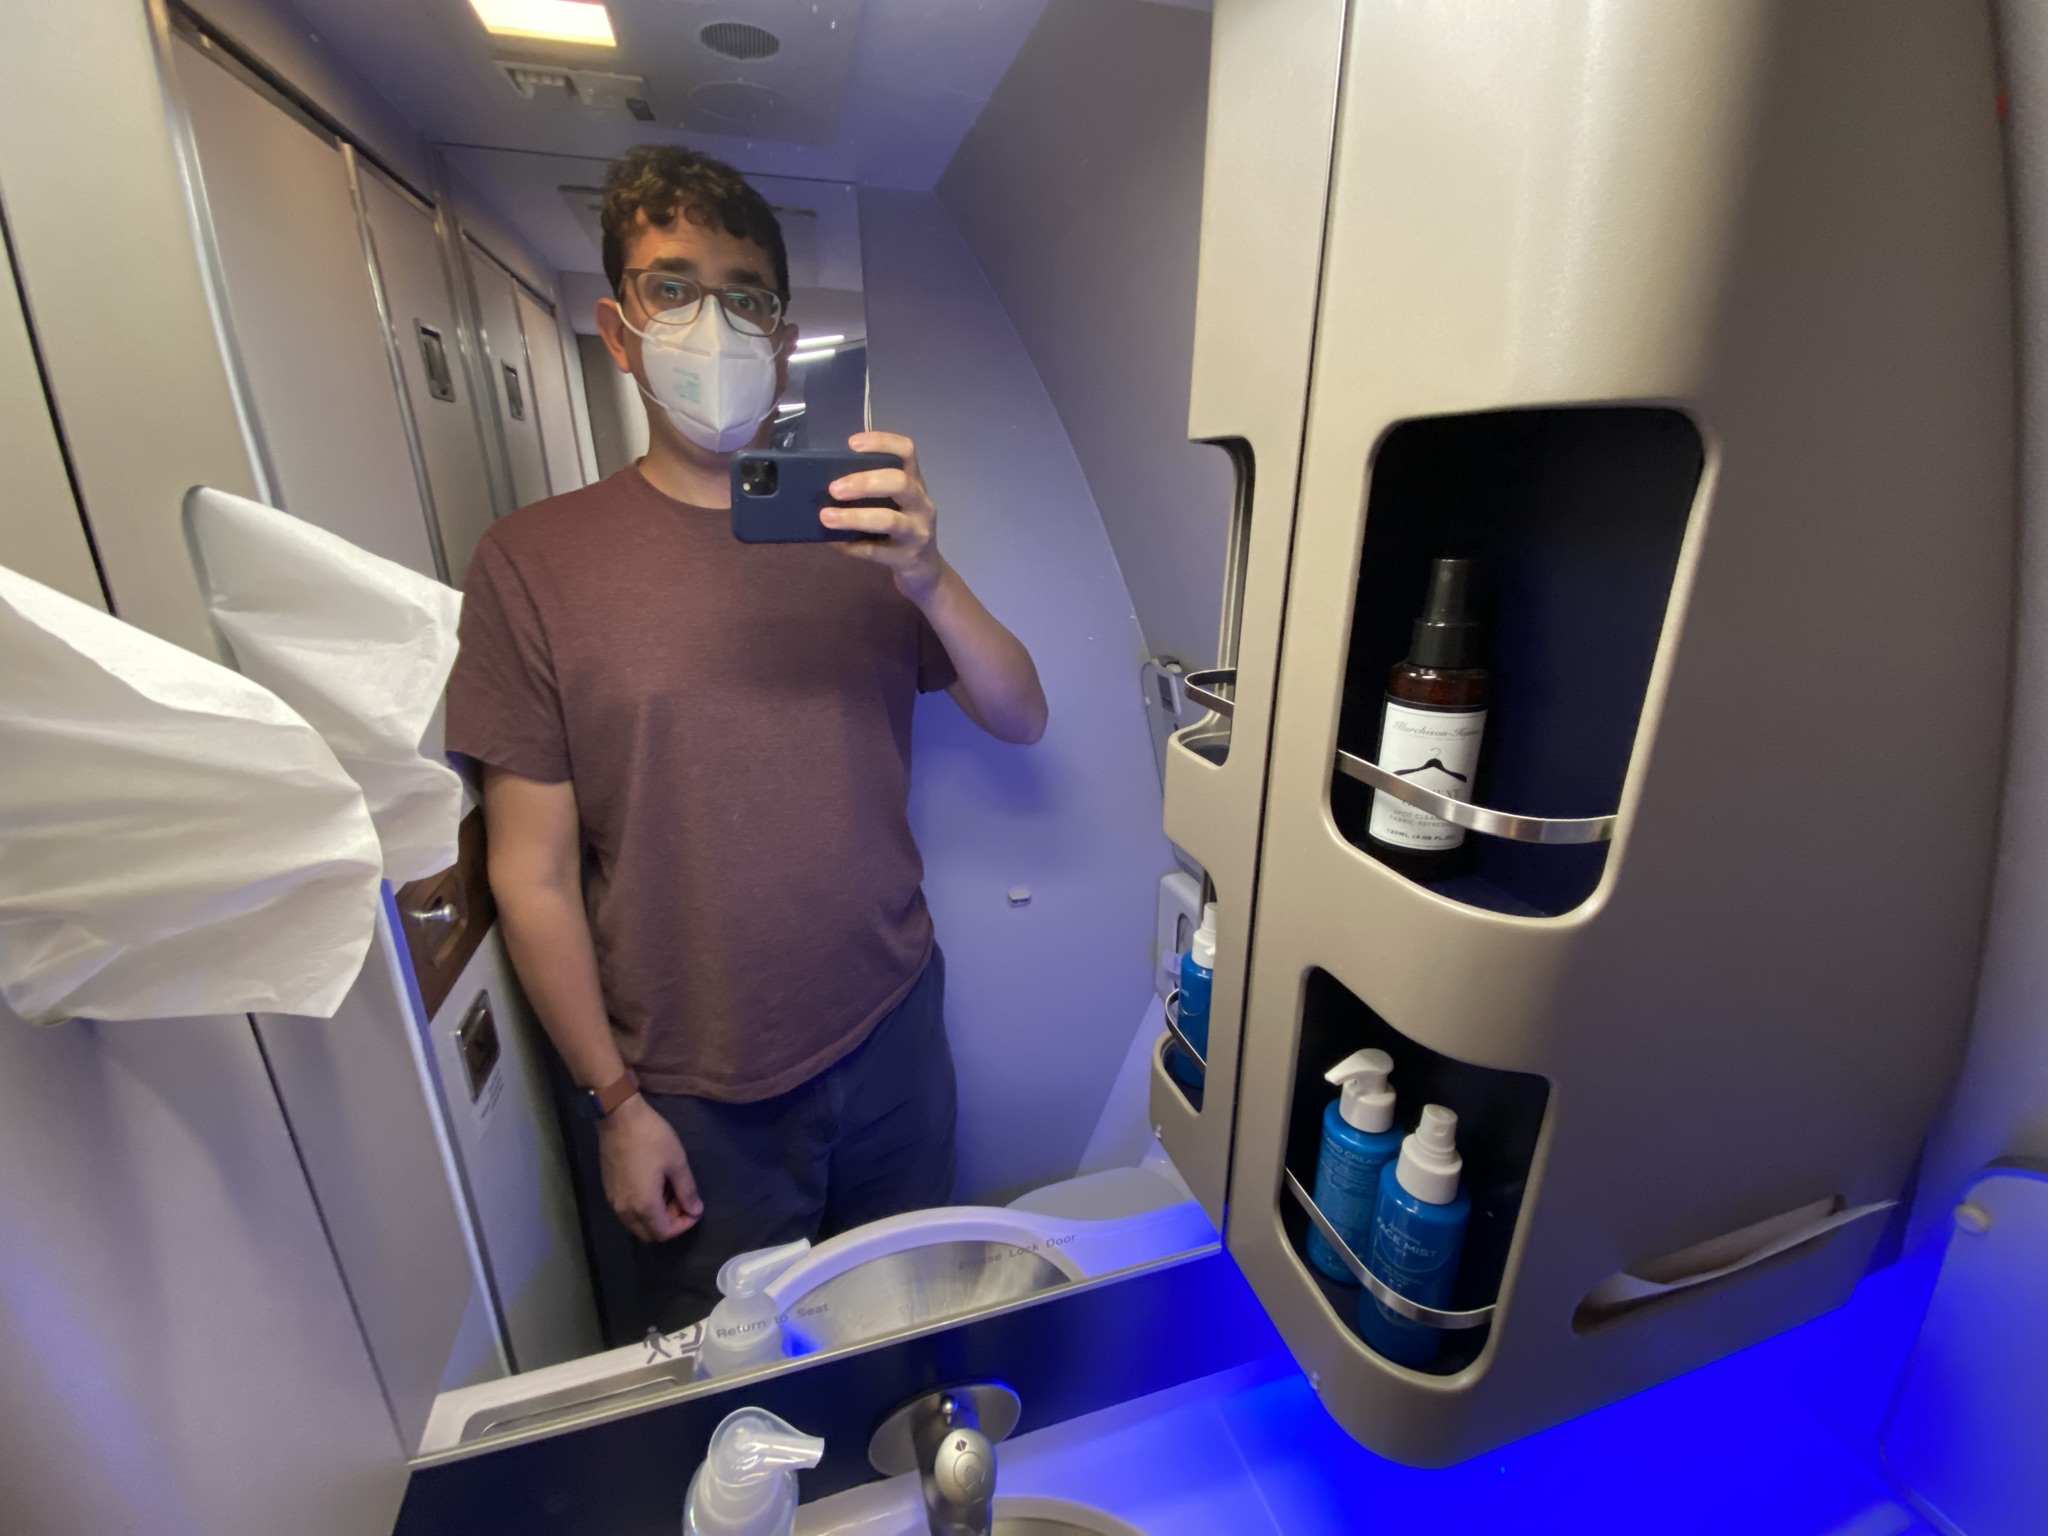 Jason Rabinowitz taking a selfie in the lavatory on the United Airlines 767-300ER